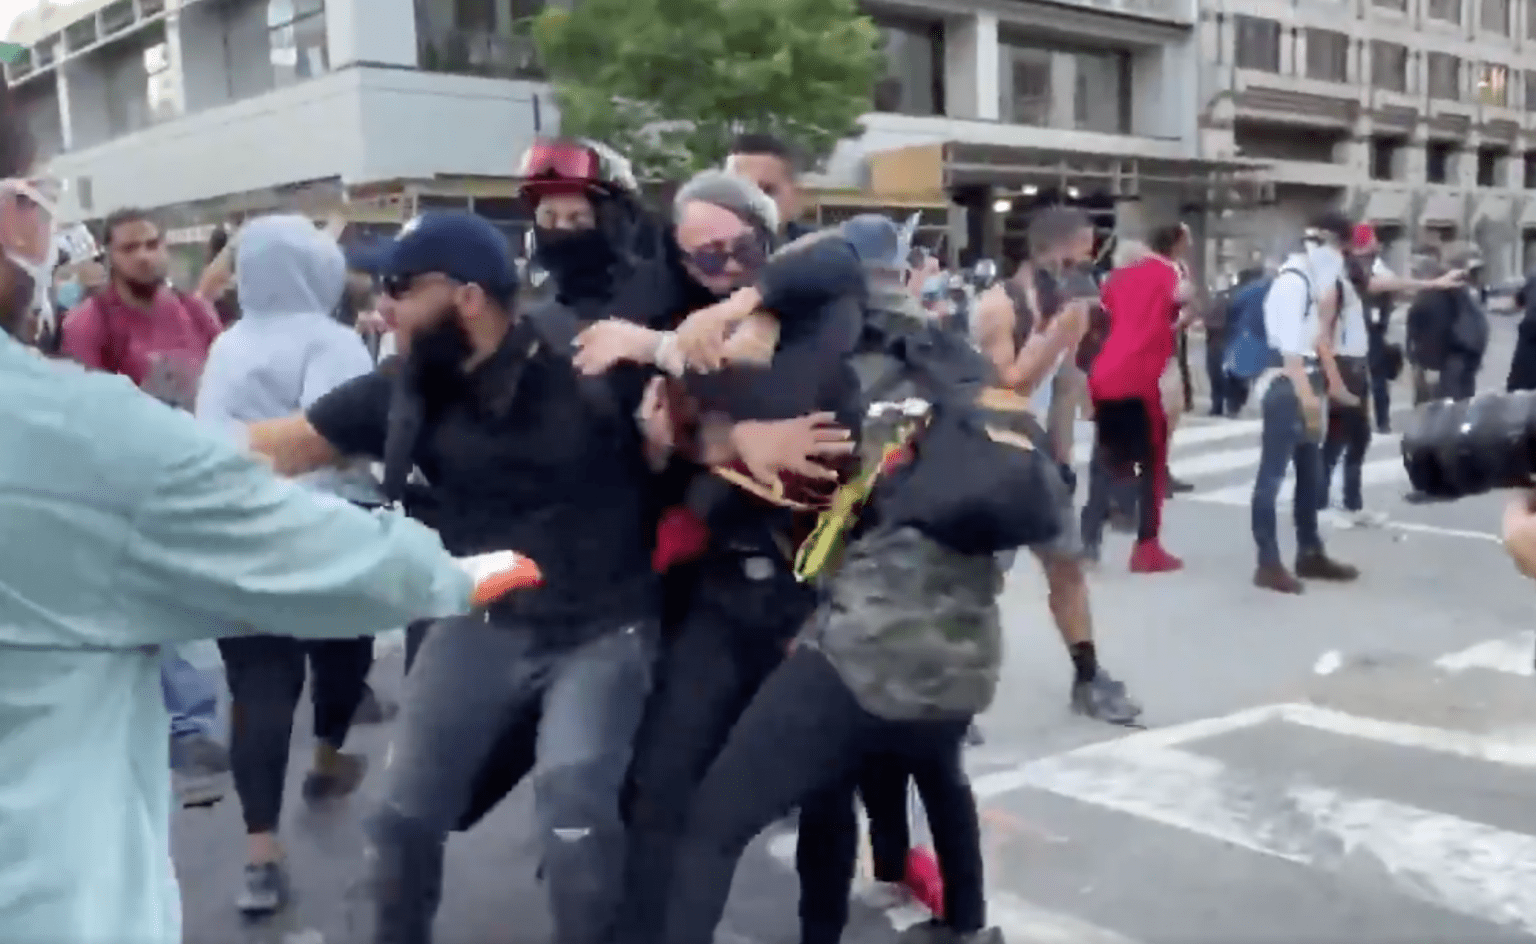 Watch: Rioter causing damage in DC tackled by protesters and handed to police: 'Take his ass!""